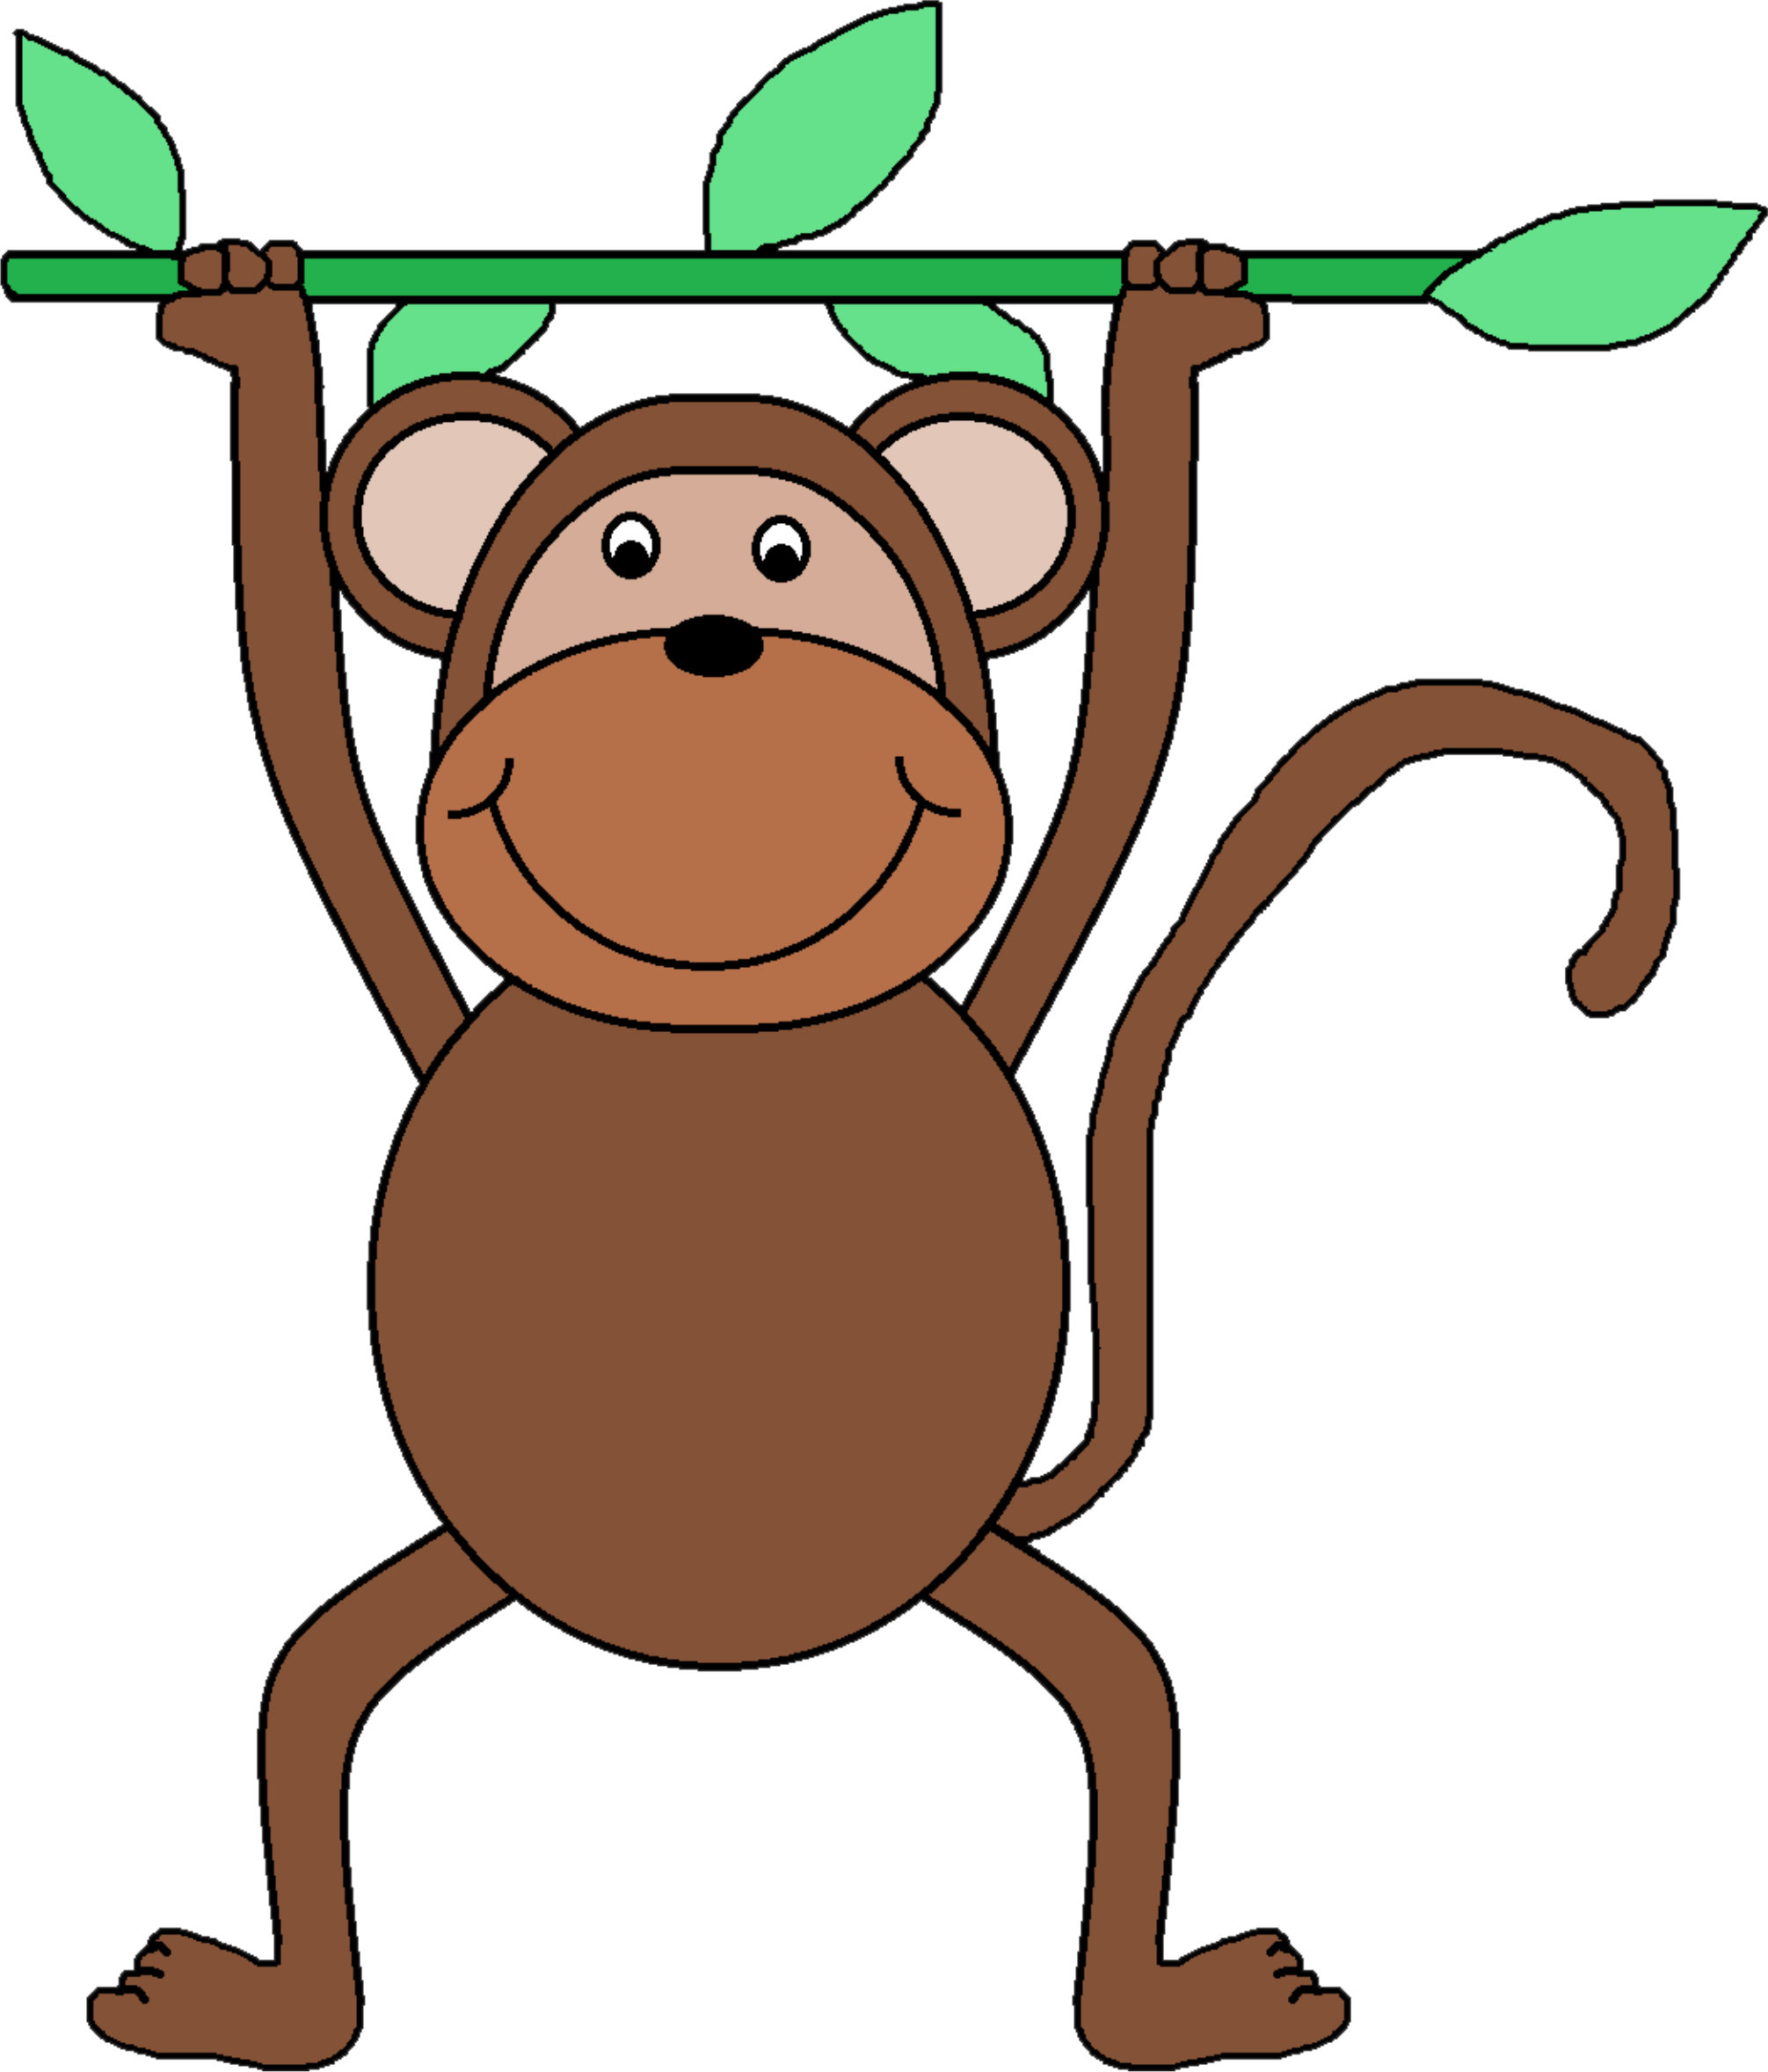 Monkey Clip Art By Xsodiqov Hanging Funny And Sweet Brown Monkey On Openclipart Monkey Clip Art Free Clip Art Clip Art